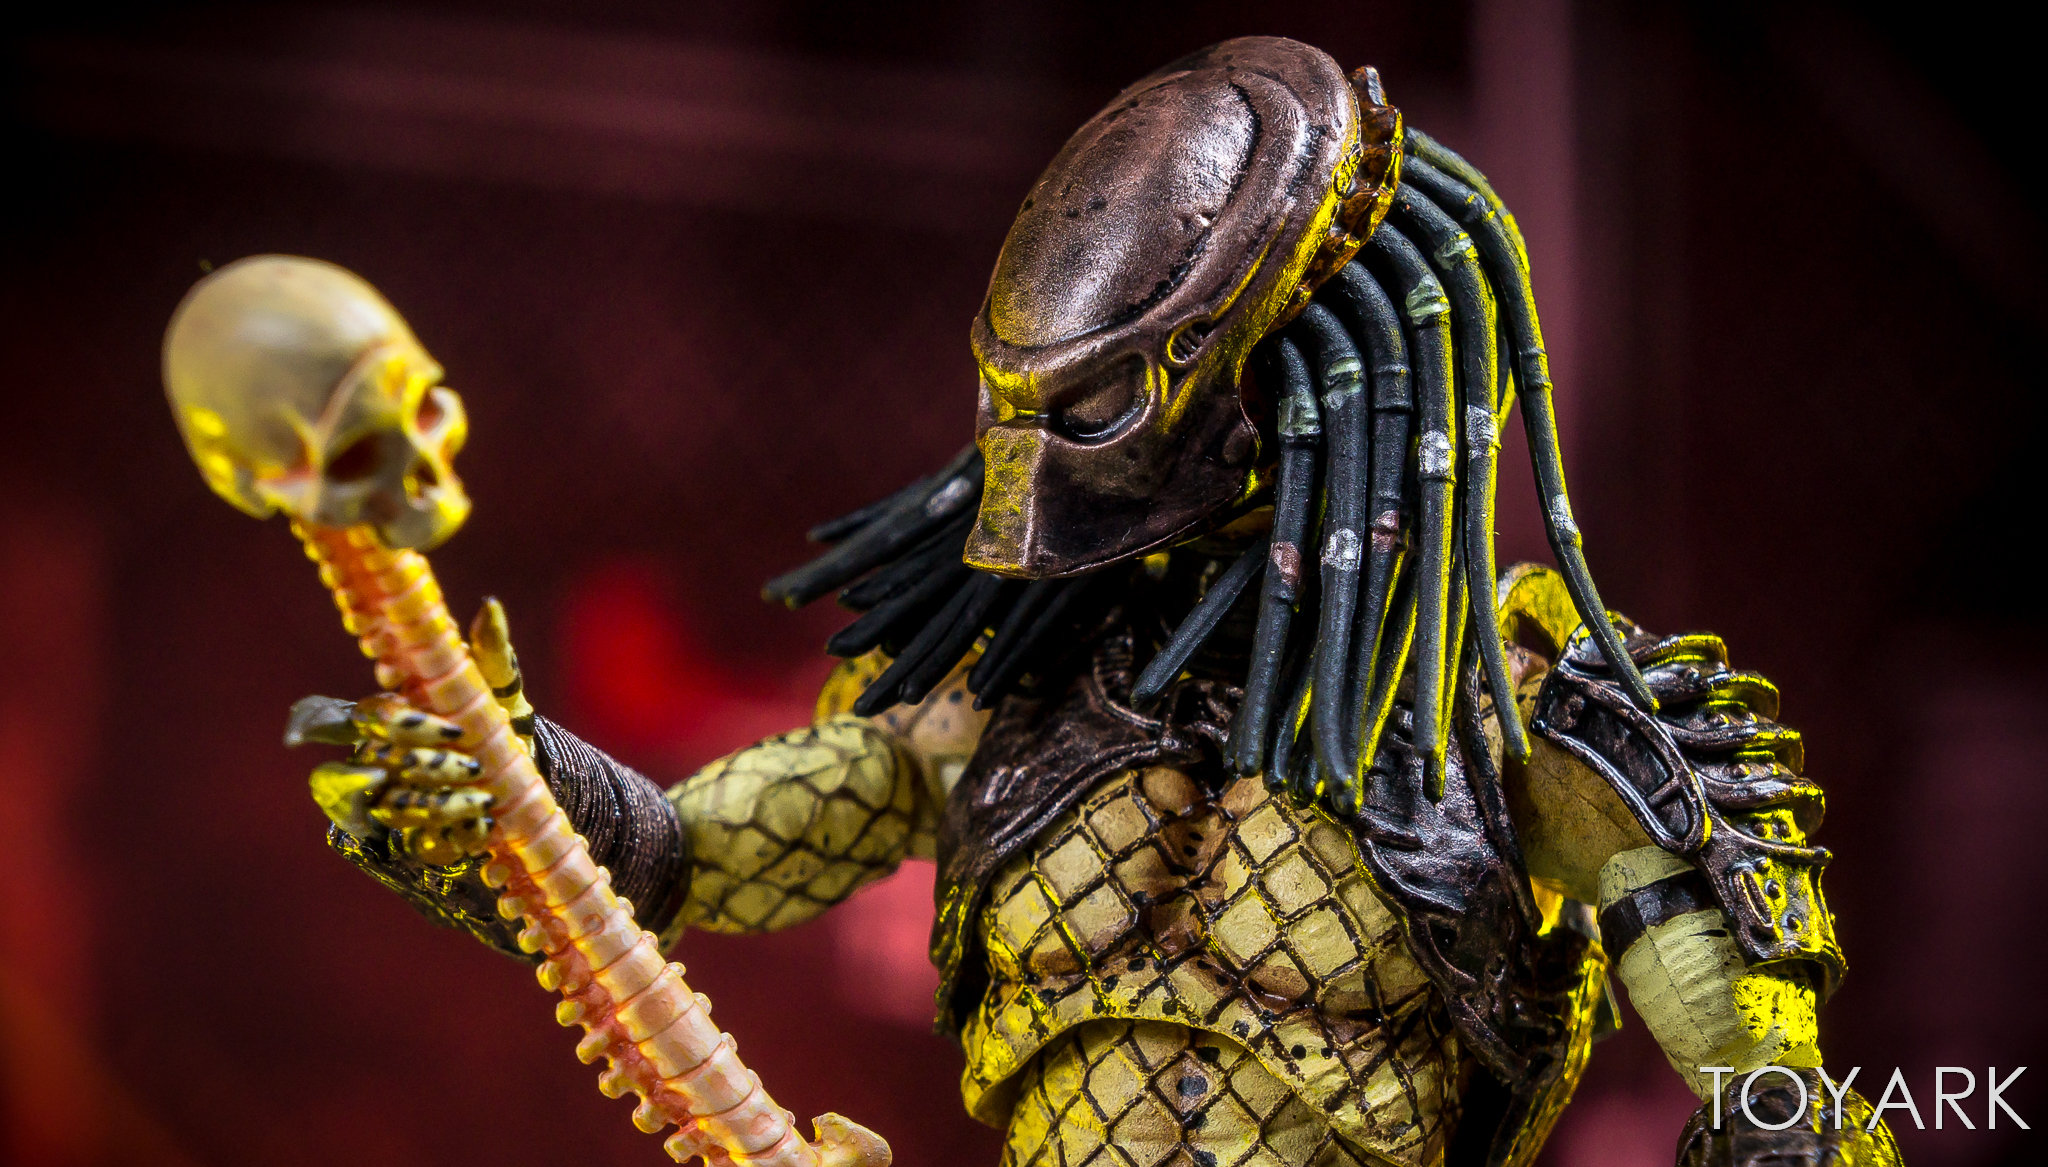 http://news.toyark.com/wp-content/uploads/sites/4/2018/03/Hiya-Predator-2-Figures-027.jpg